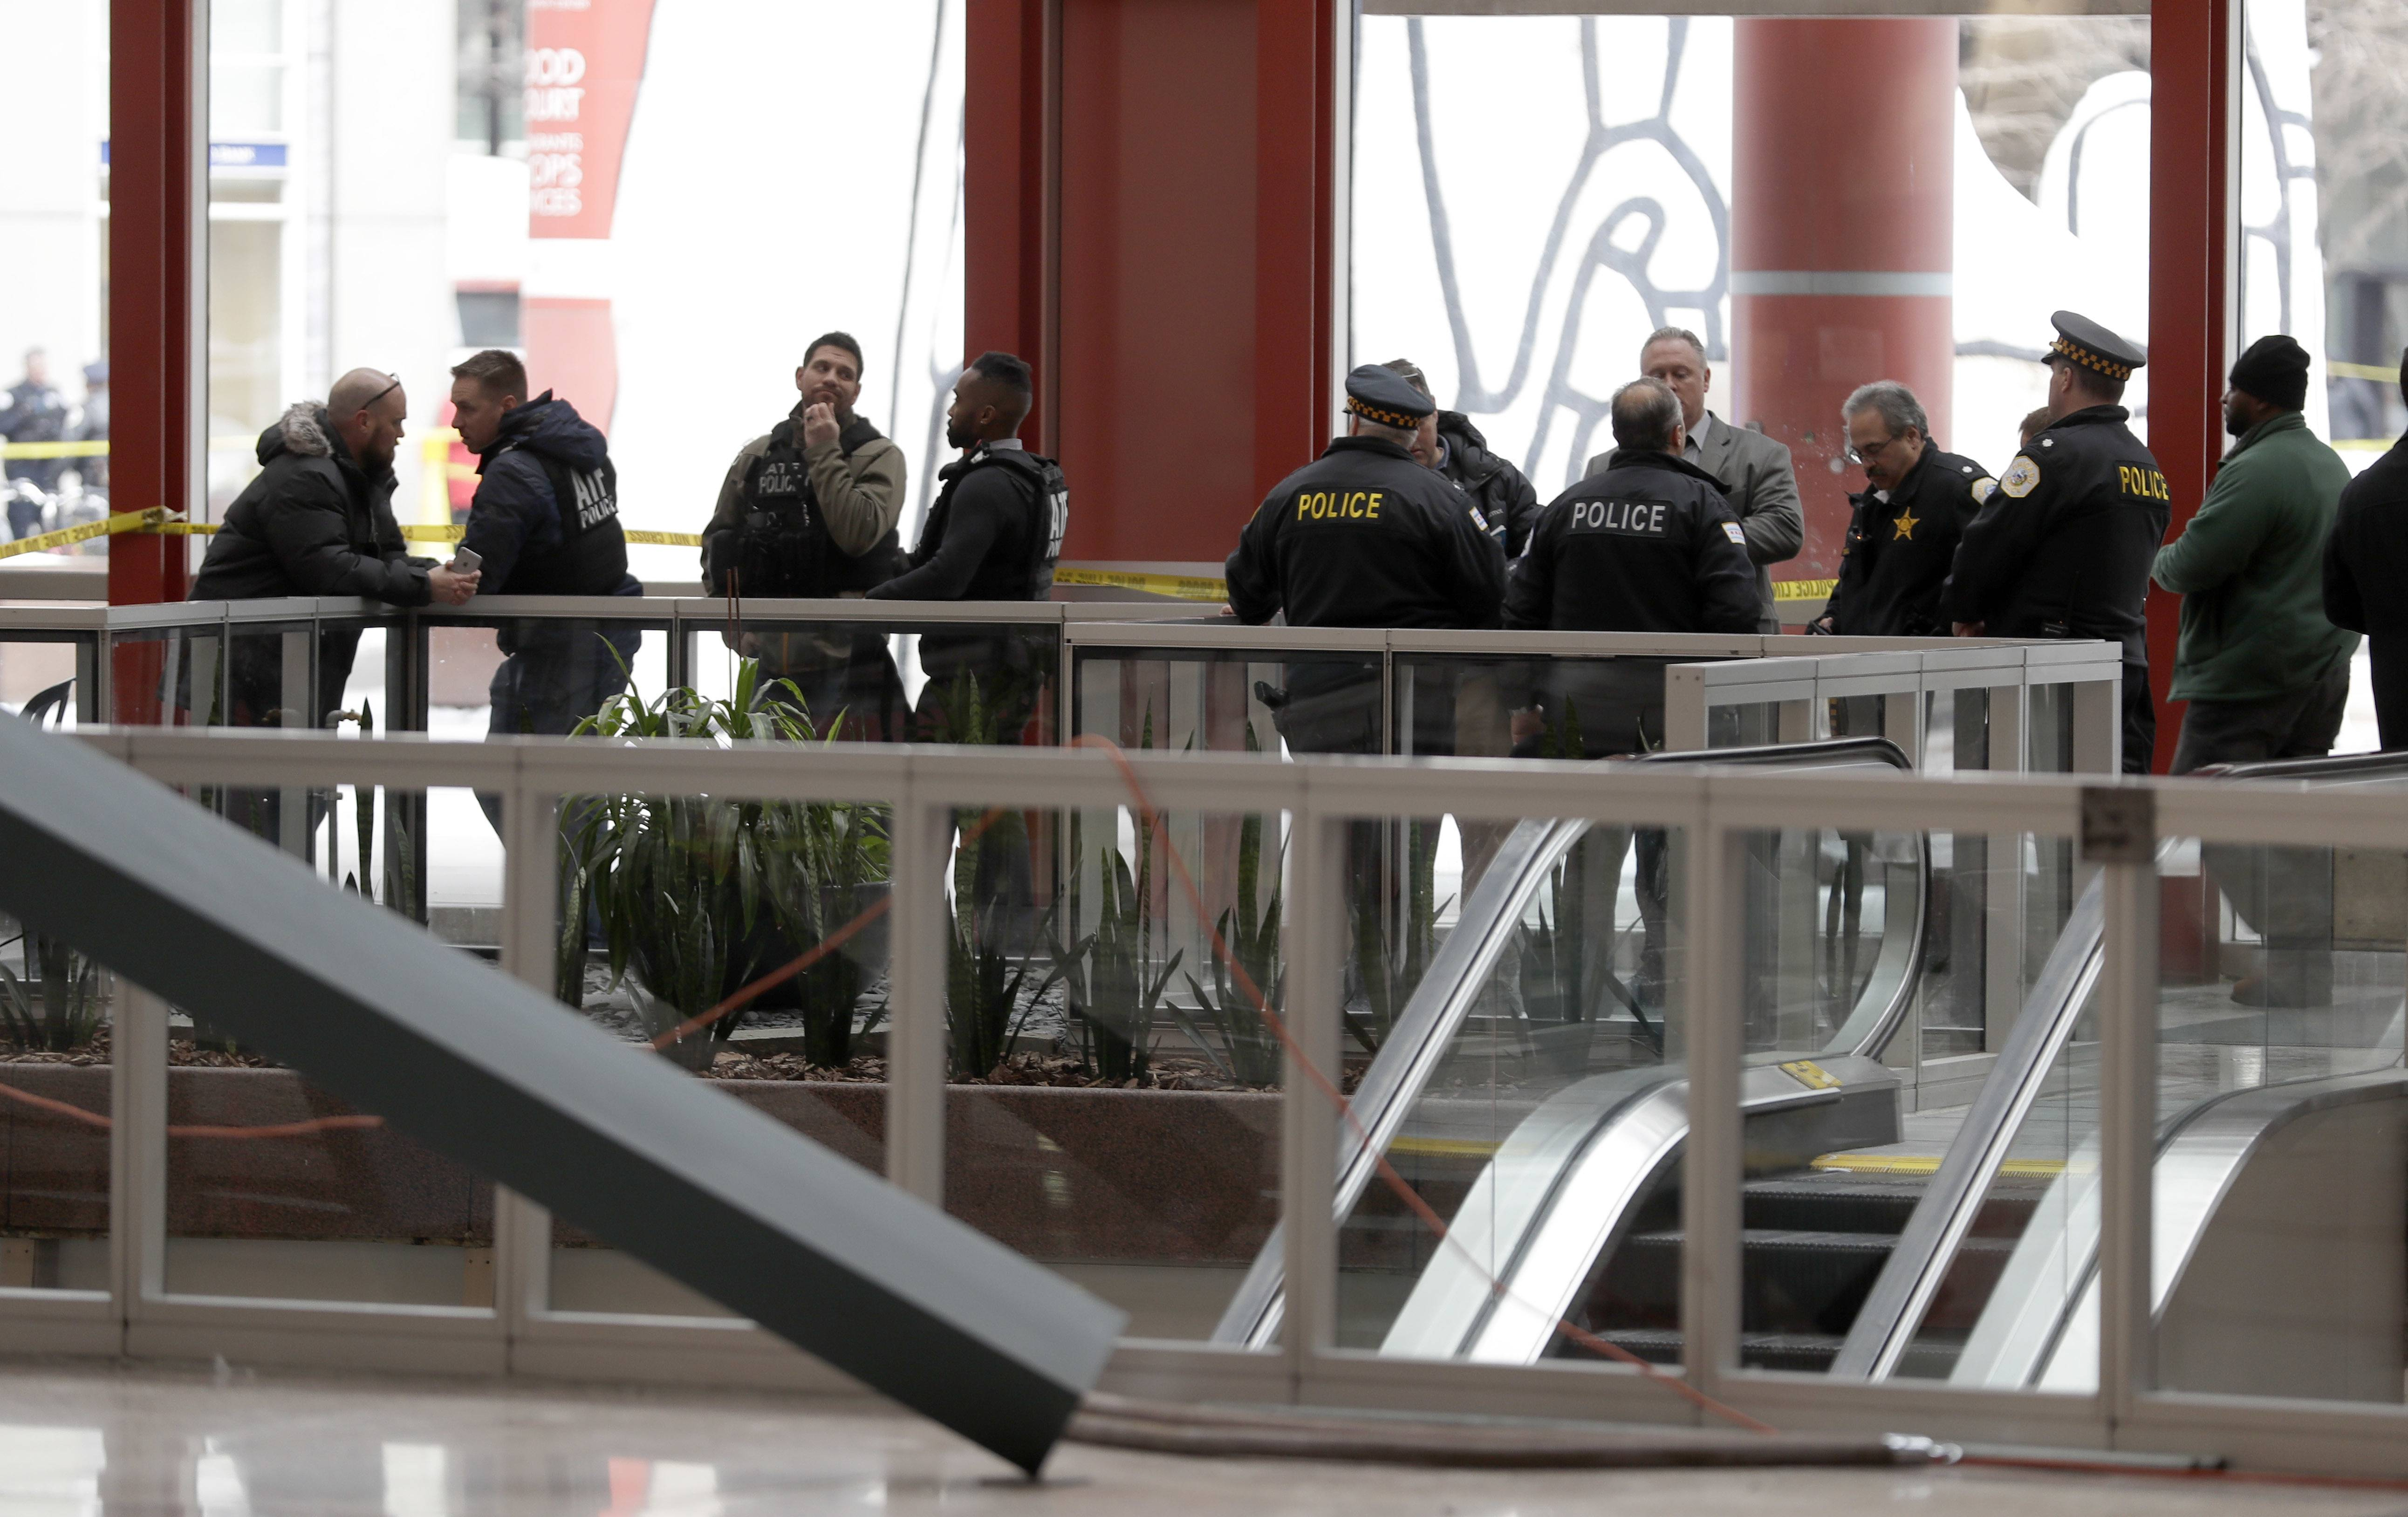 Chicago police officers remain on the scene inside the James R. Thompson Center after off-duty police Cmdr. Paul Bauer was shot several times as he went to assist tactical officers pursuing a fleeing suspect near the center on Tuesday in Chicago.